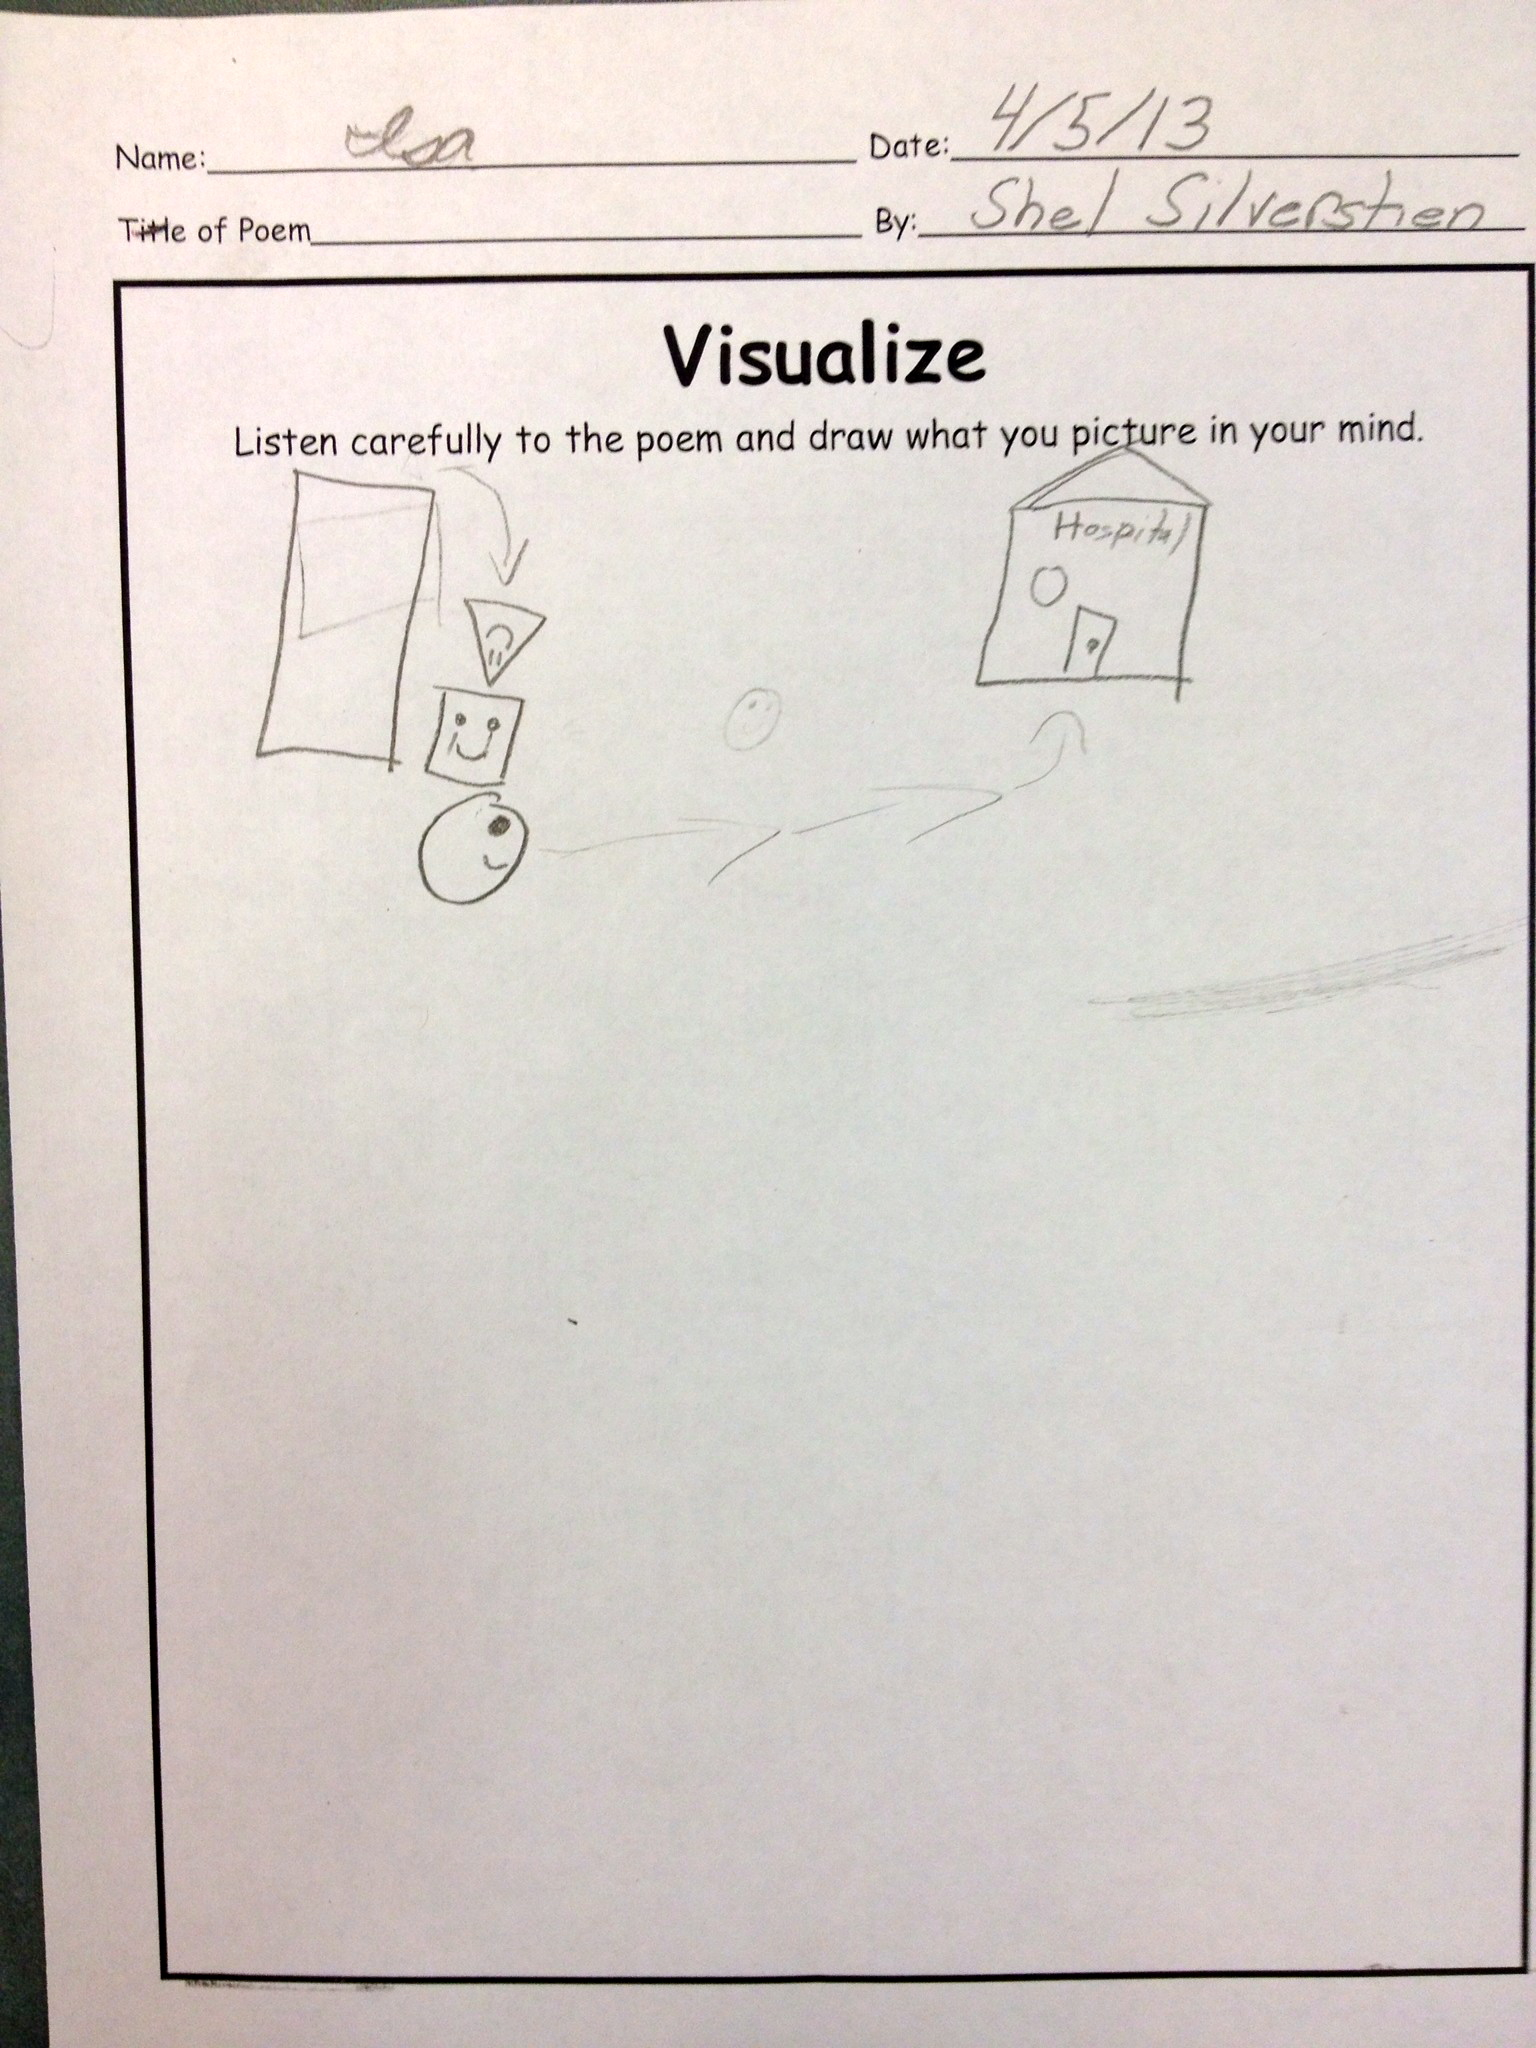 Visualizing Shel Silverstein